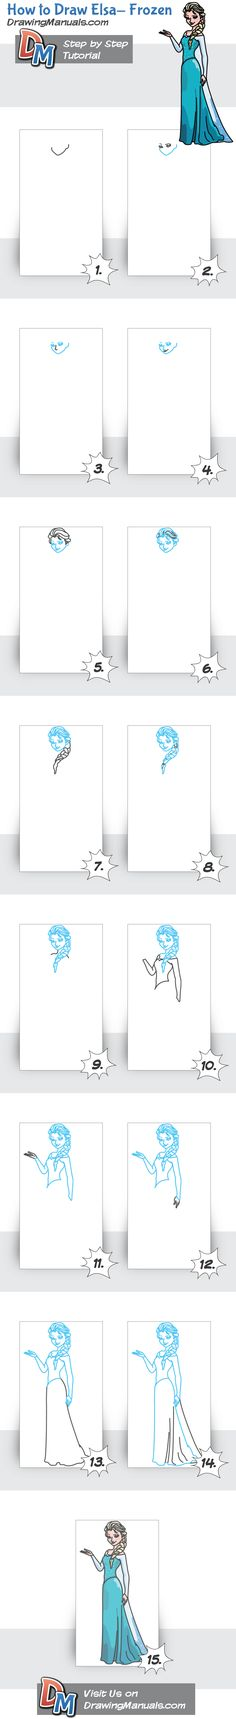 Queen Elsa of Arendelle, also known as The Snow Queen, is the main character in the movie Frozen, and we had to make a step-by-step drawing tutorial for it. Colorful Art, Disney Art Drawings, Disney Drawings, Disney Drawing Tutorial, Disney Character Drawing, Drawings, Frozen Drawings, Draw, How To Draw Elsa